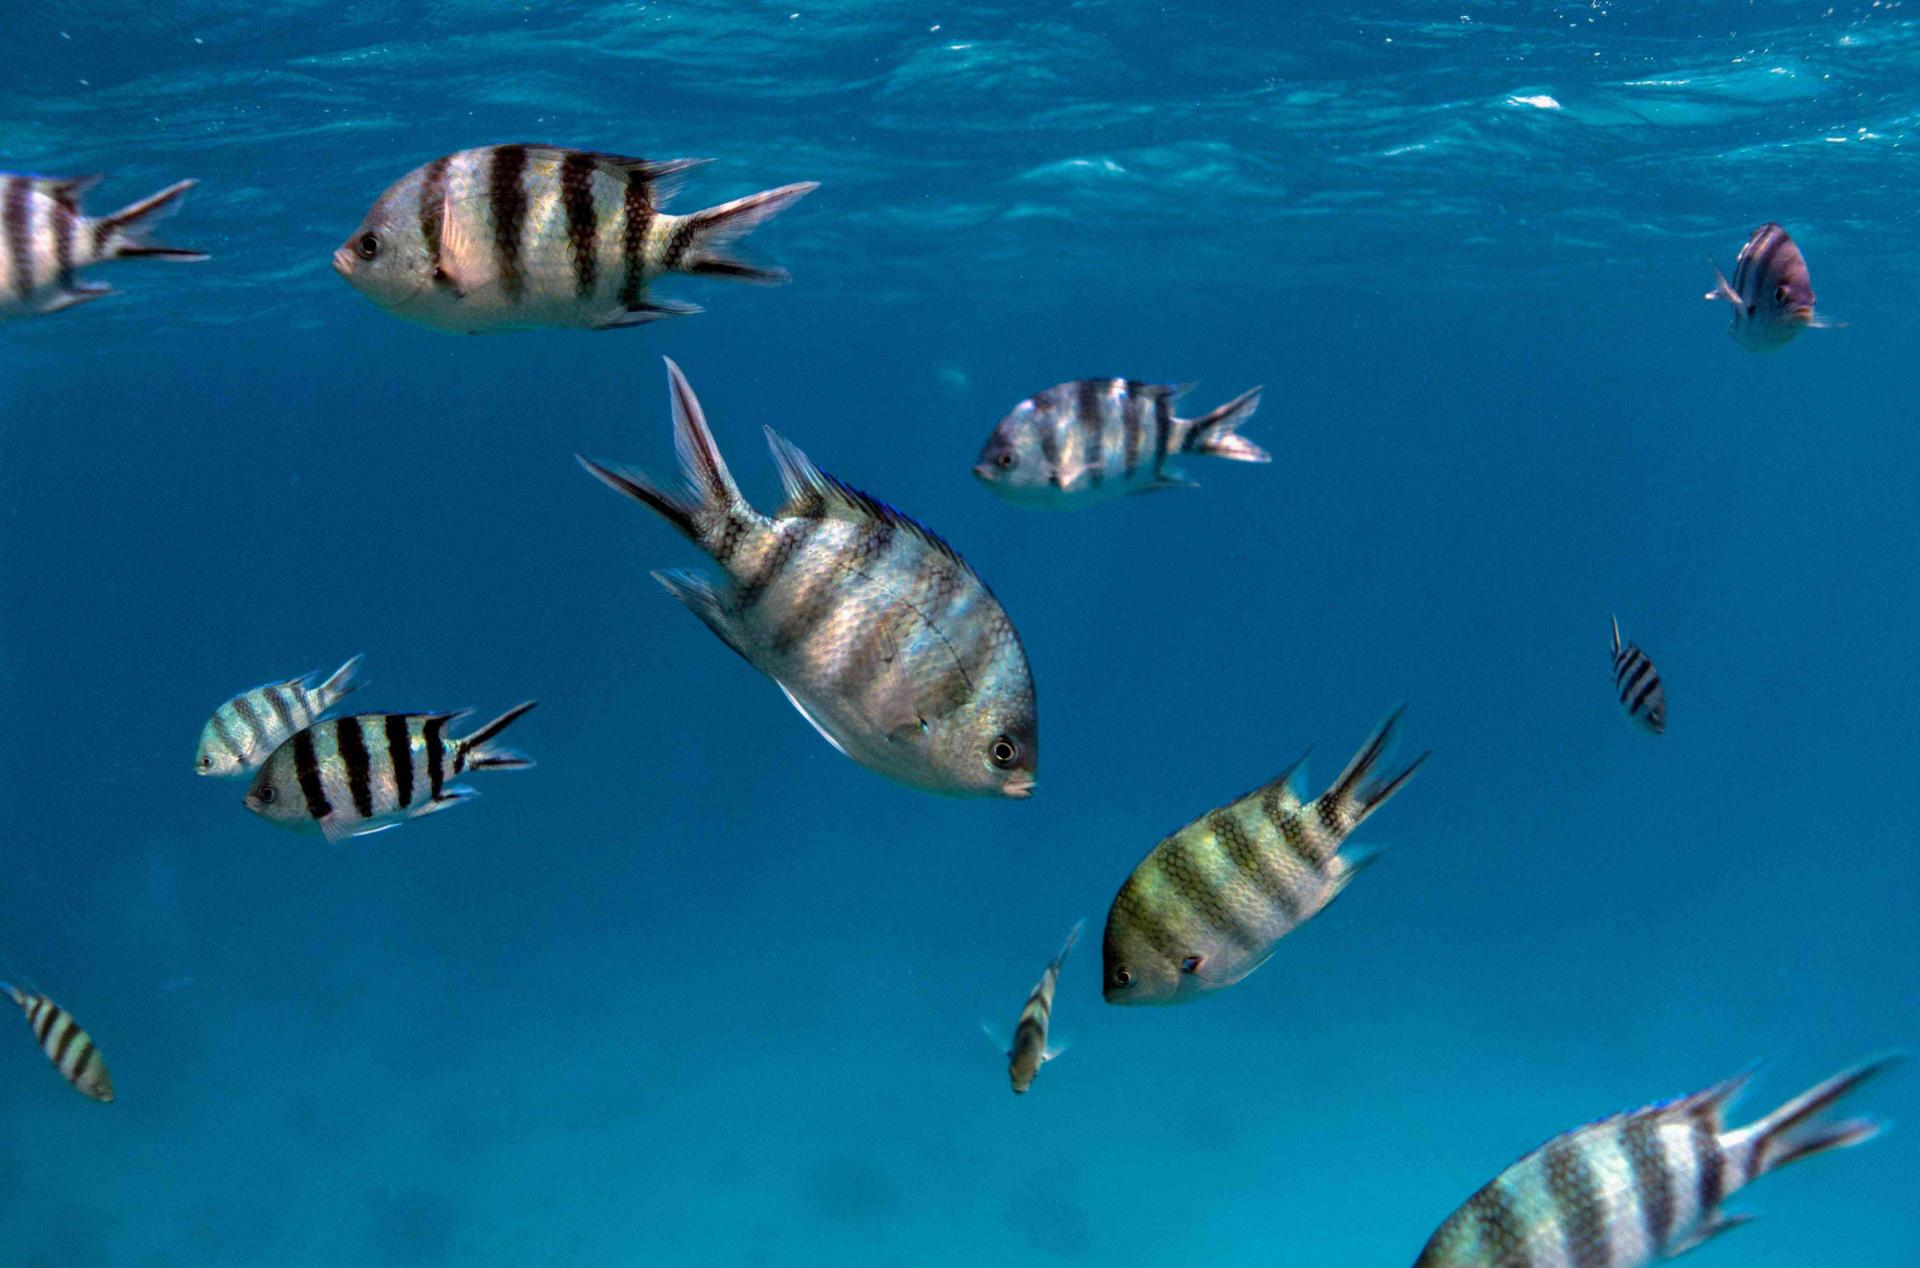 This picture taken on September 7, 2018 shows a male Sergeant major fish (Abudefduf saxatilis) swimming in the Egyptian Red Sea marine reserve of Ras Mohamed, off the southern tip of the Sinai peninsula